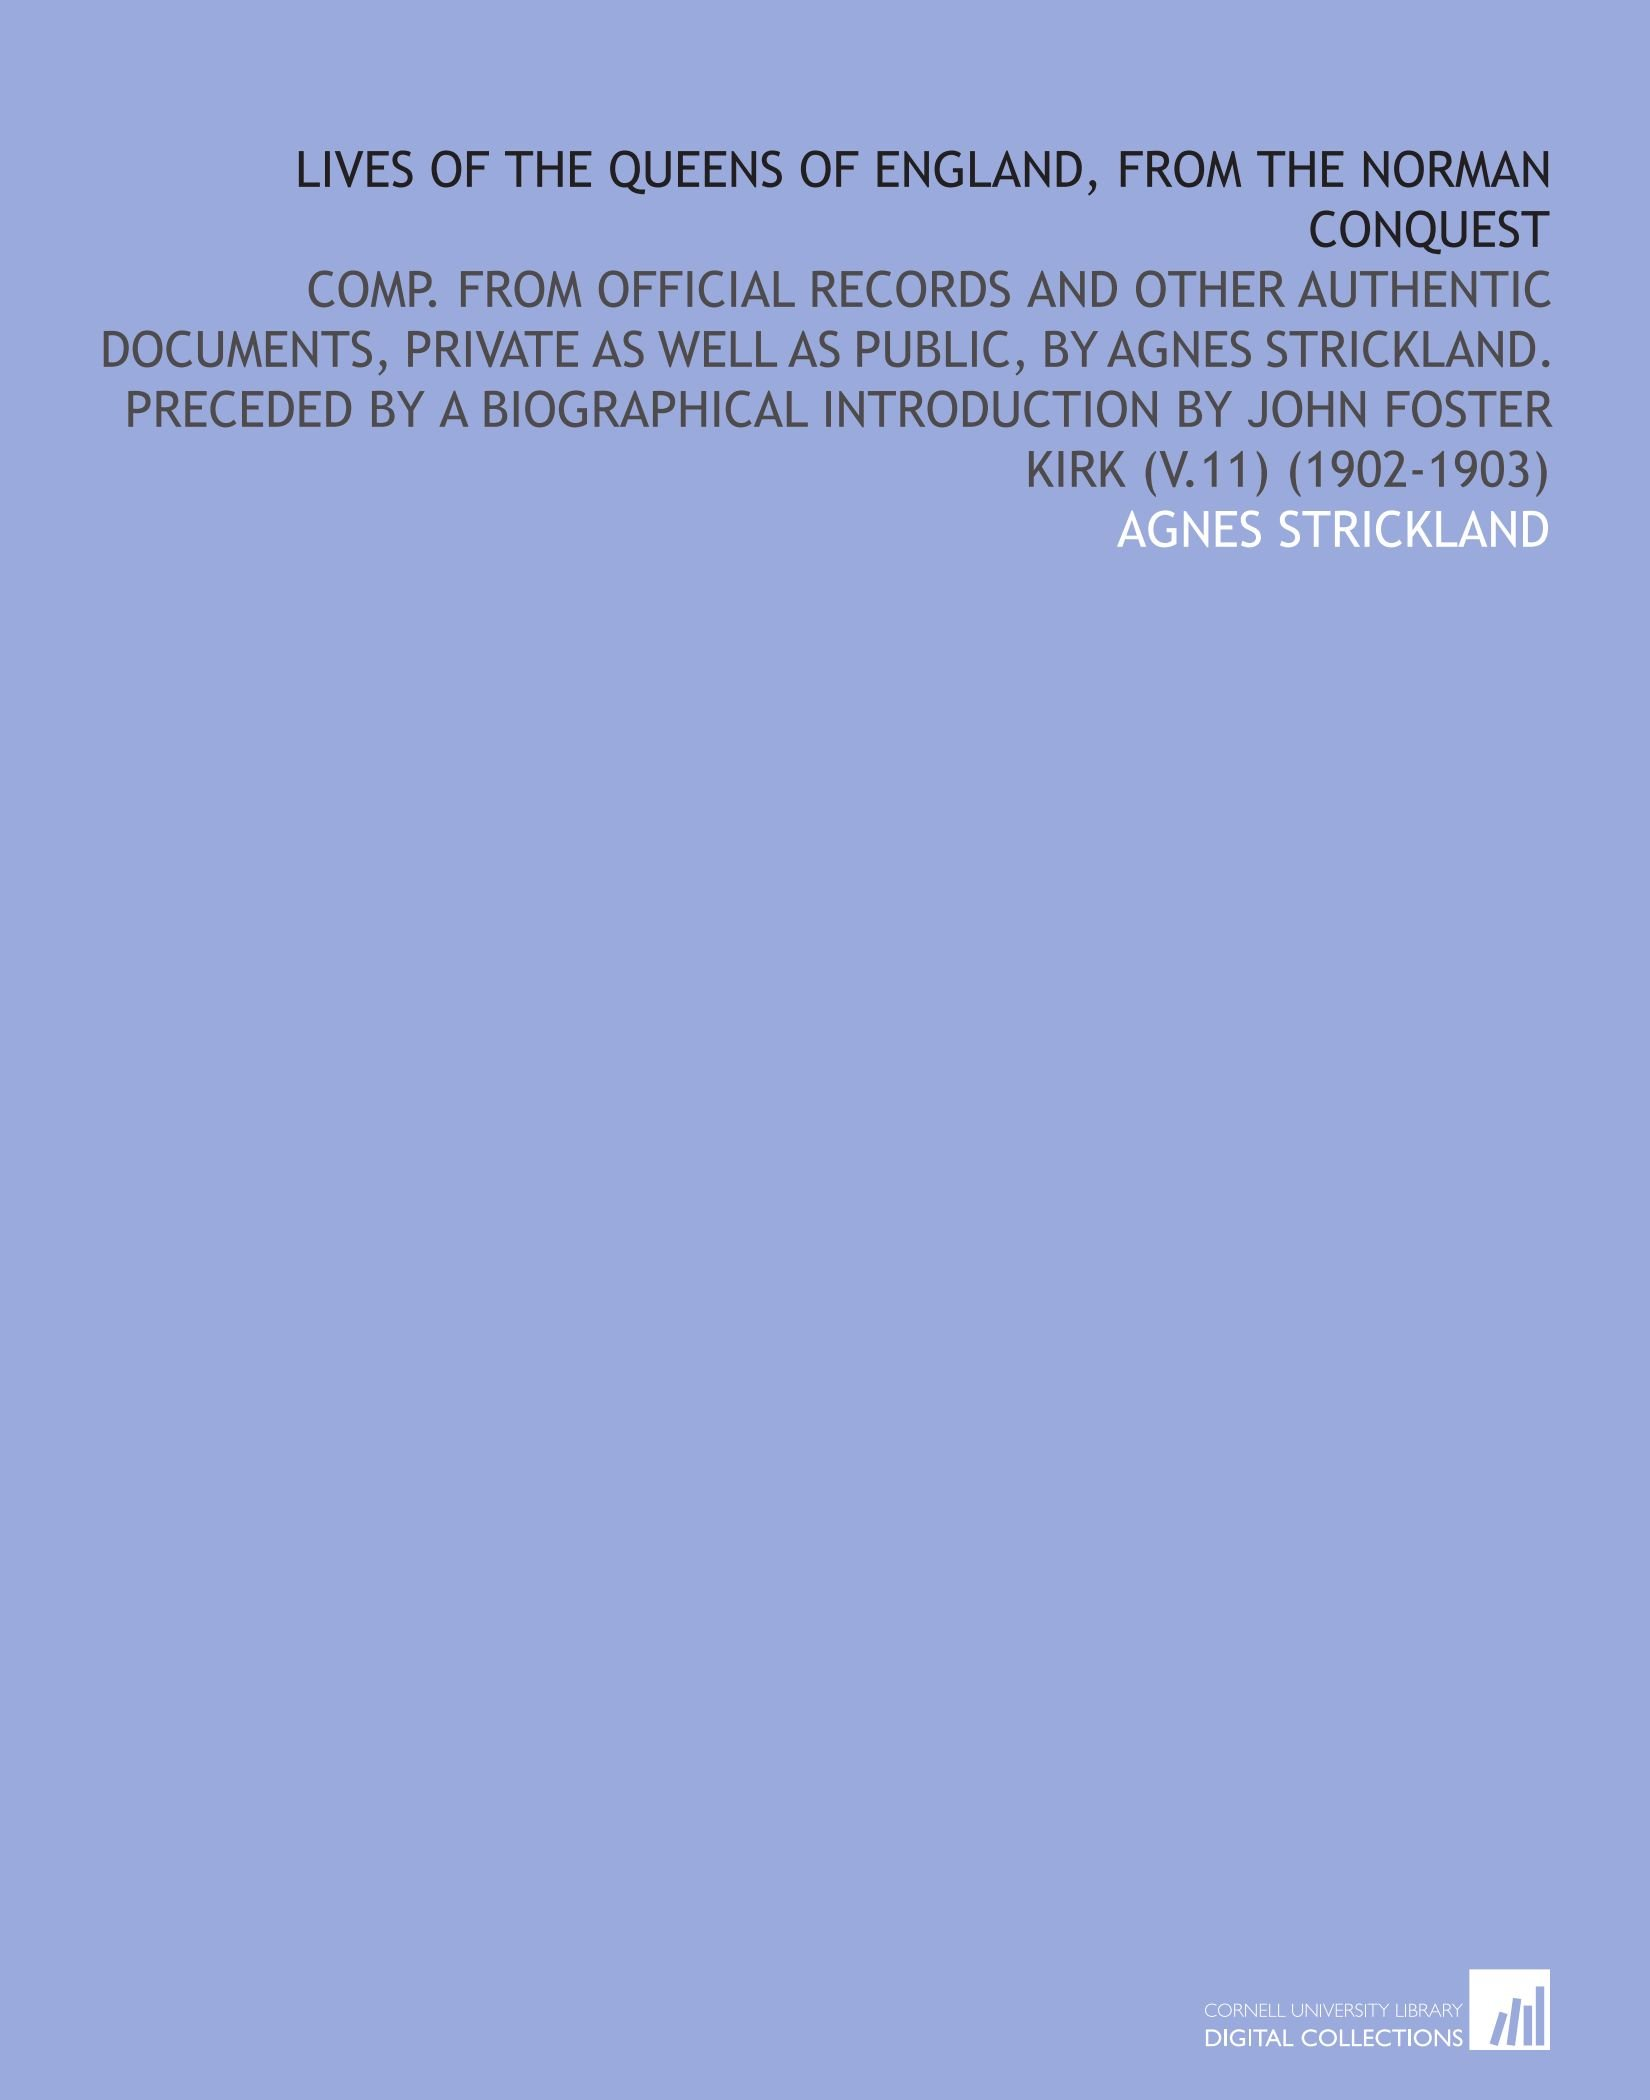 Download Lives of the Queens of England, From the Norman Conquest: Comp. From Official Records and Other Authentic Documents, Private as Well as Public, by ... by John Foster Kirk (V.11) (1902-1903) ebook